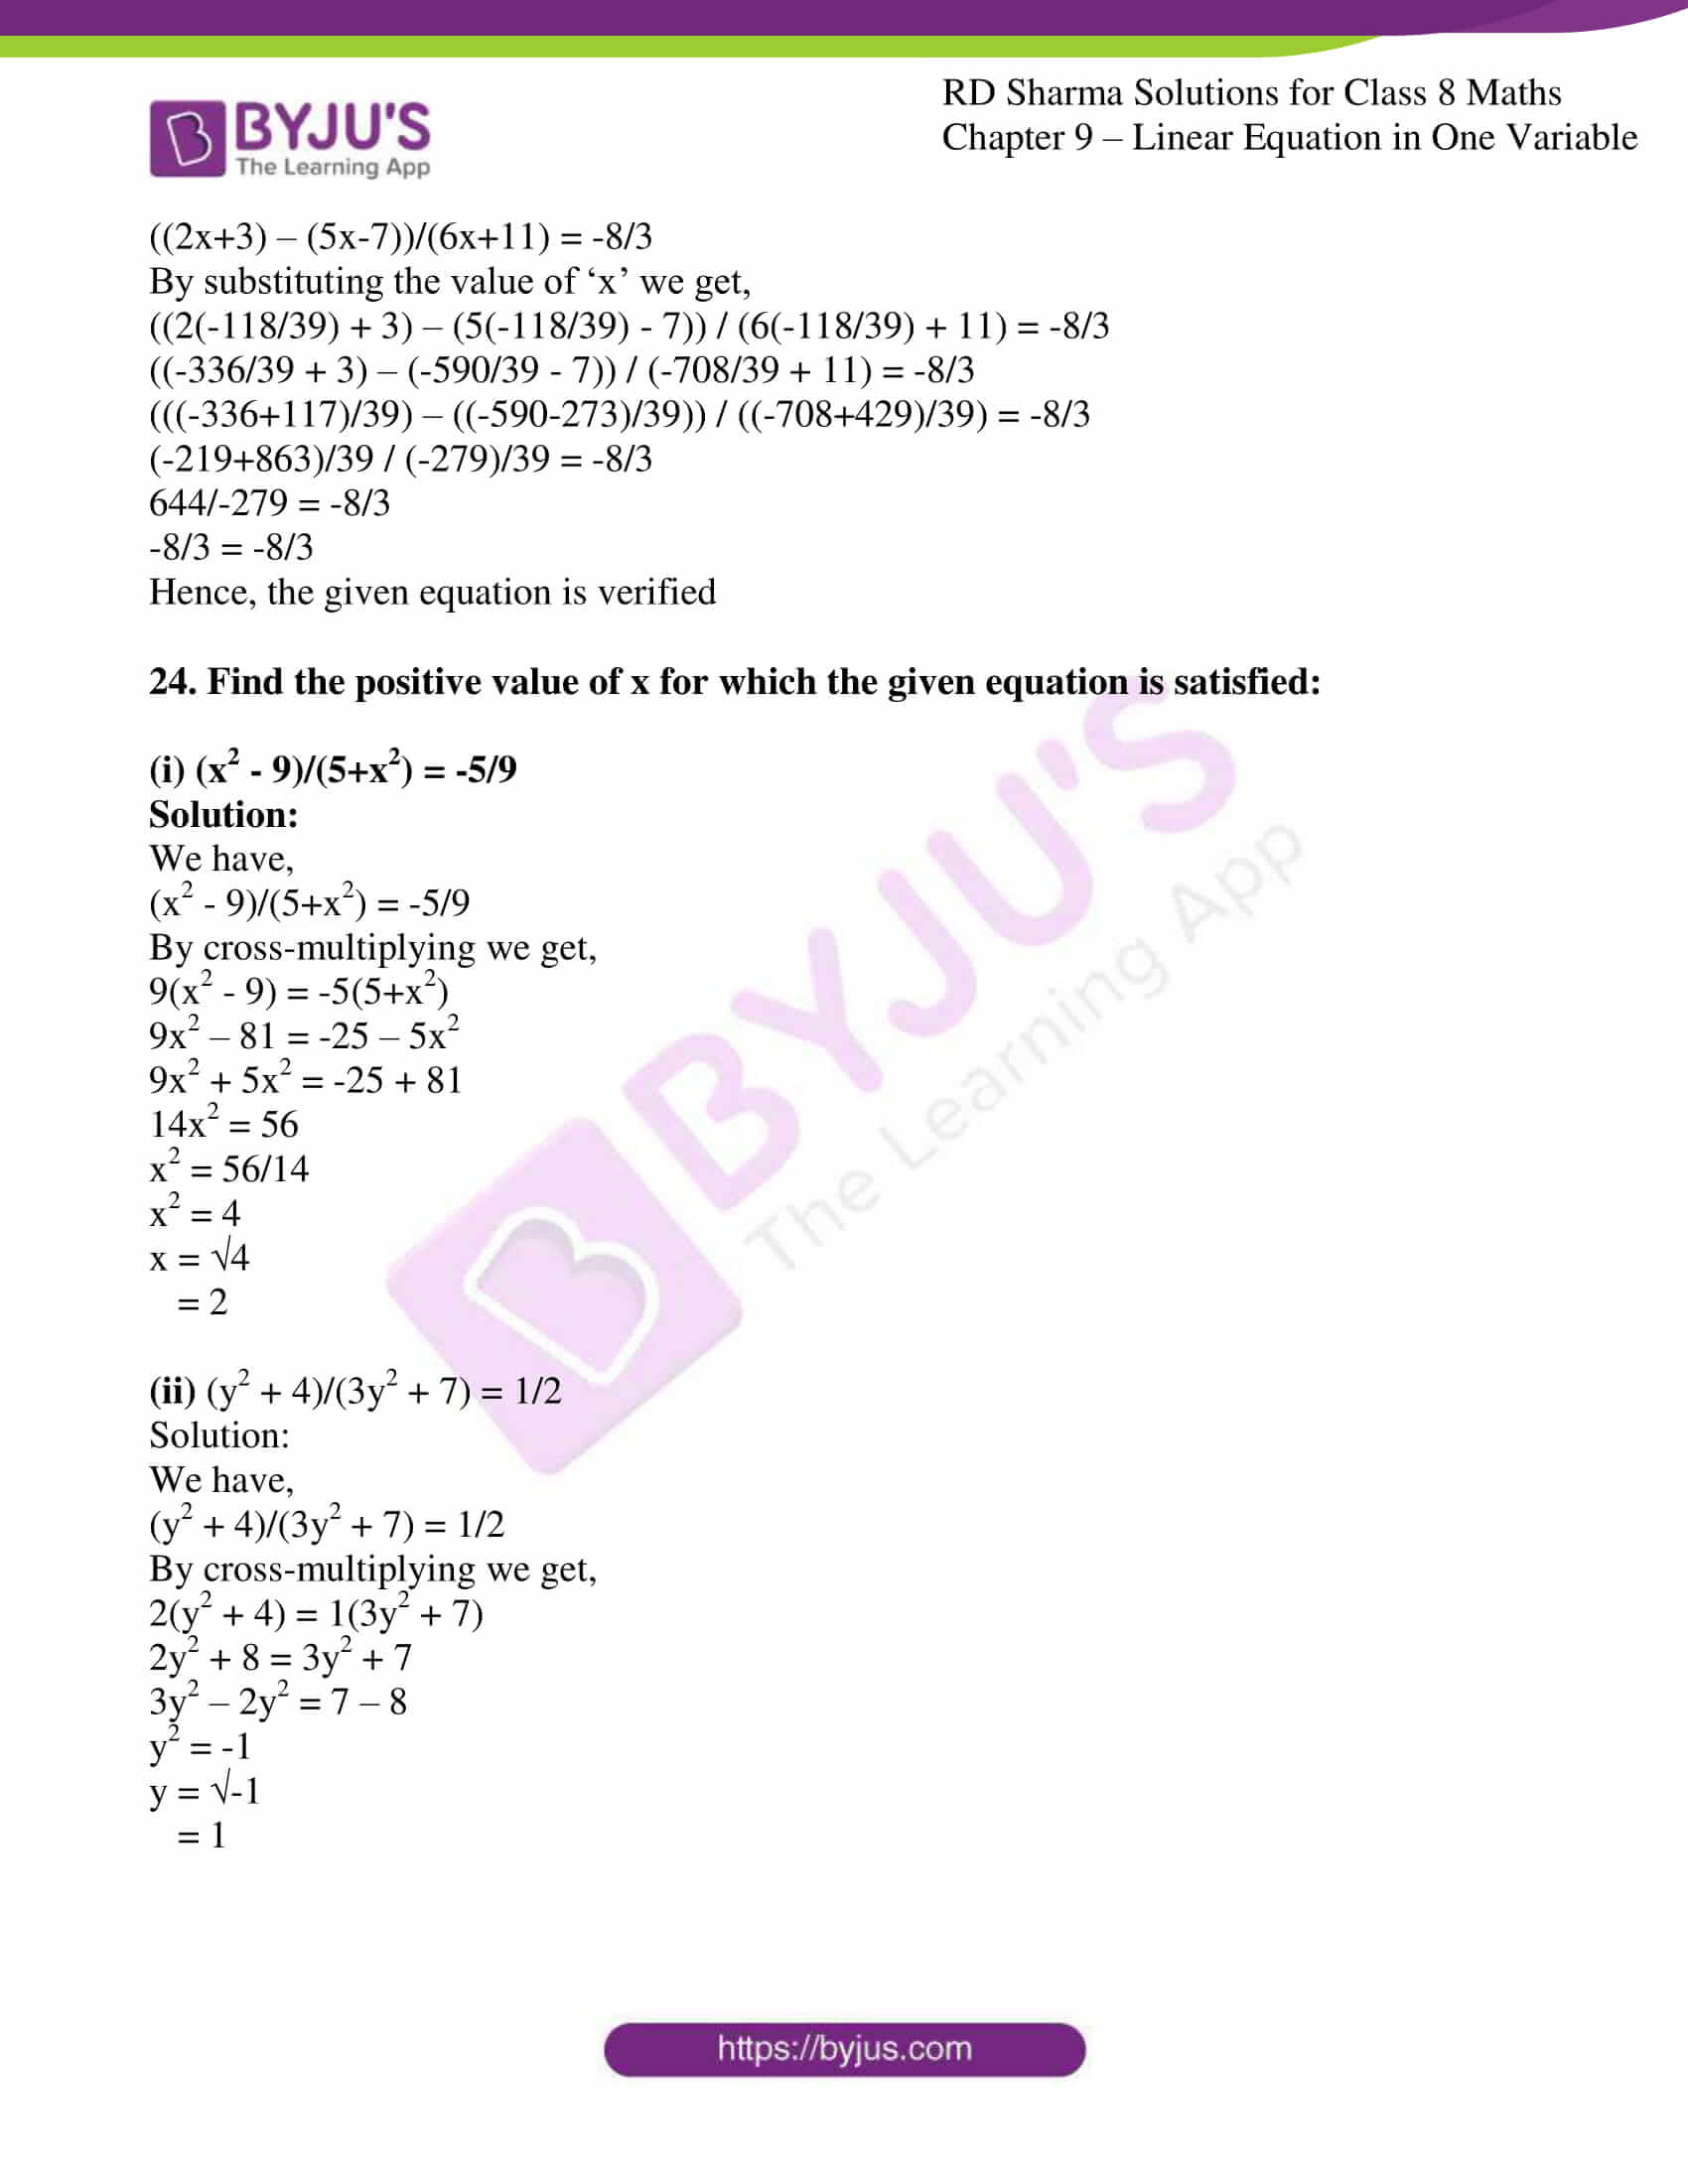 rd sharma class 8 maths chapter 9 exercise 3 15